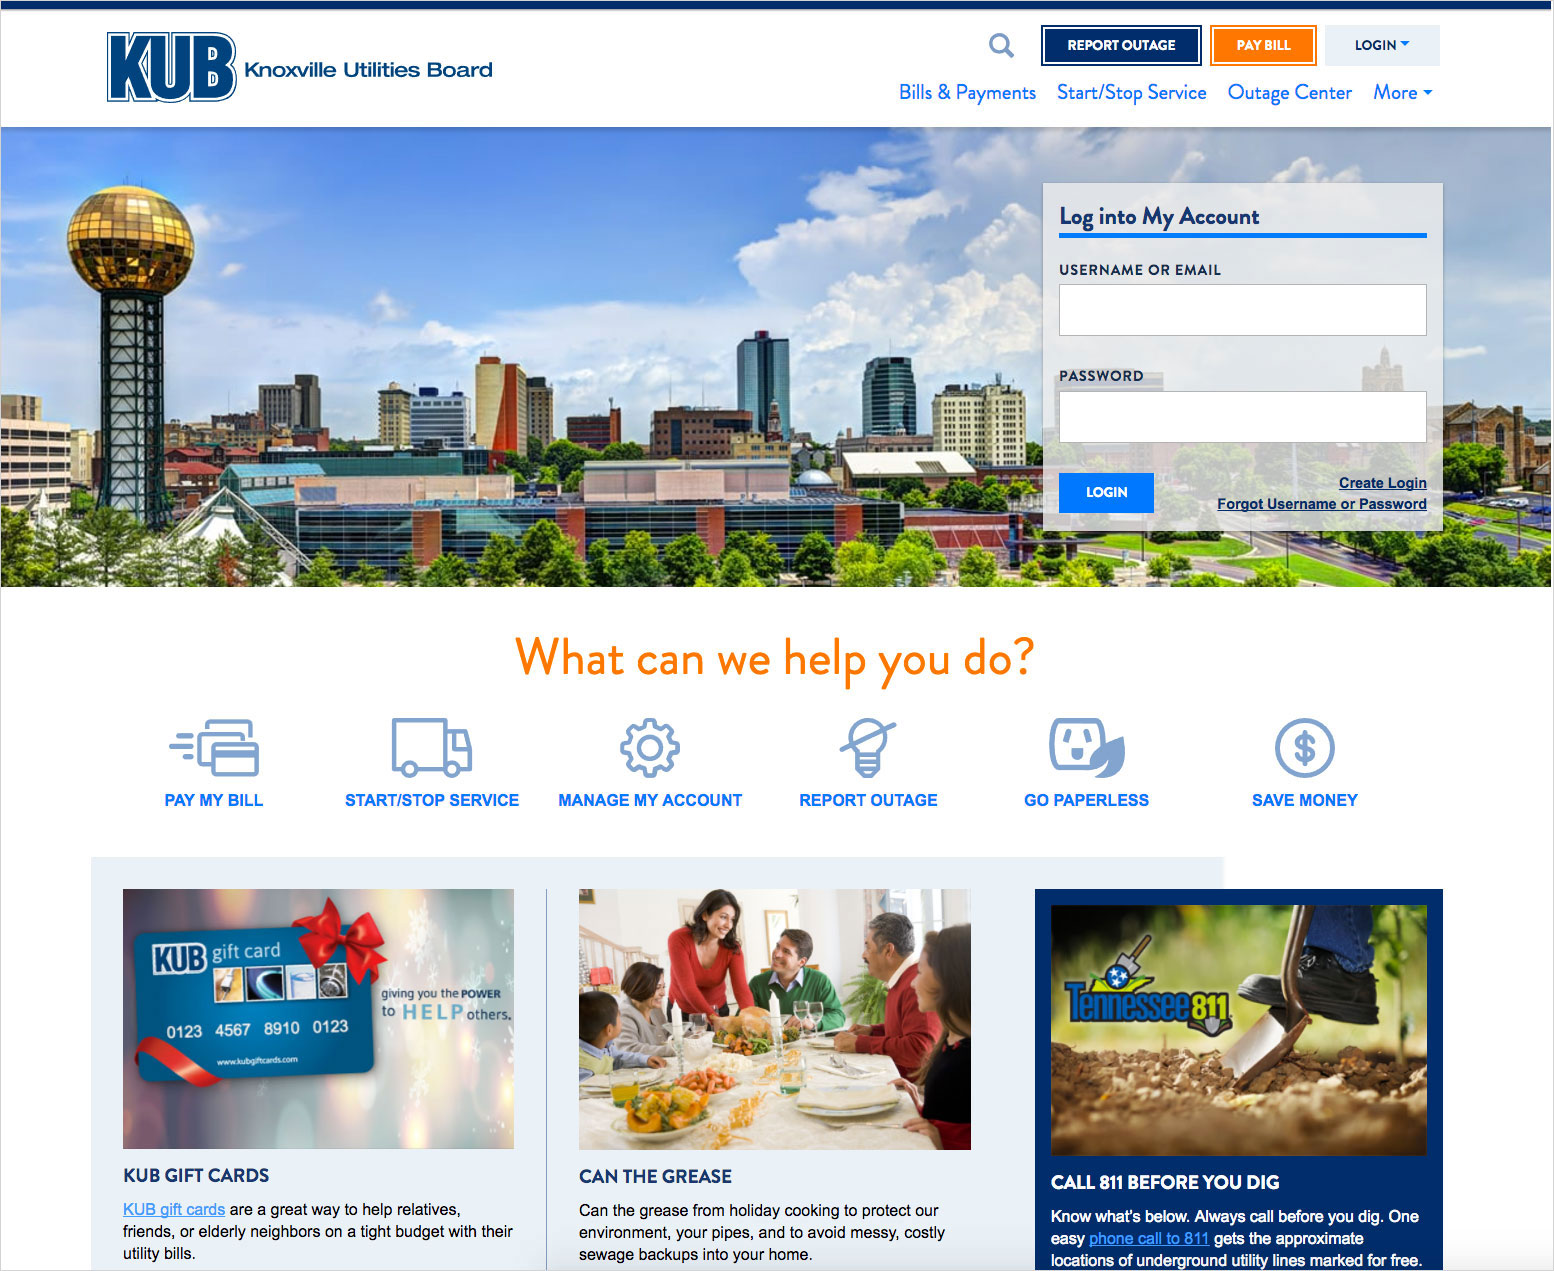 The redesigned KUB homepage allows users to quickly initiate needed tasks.